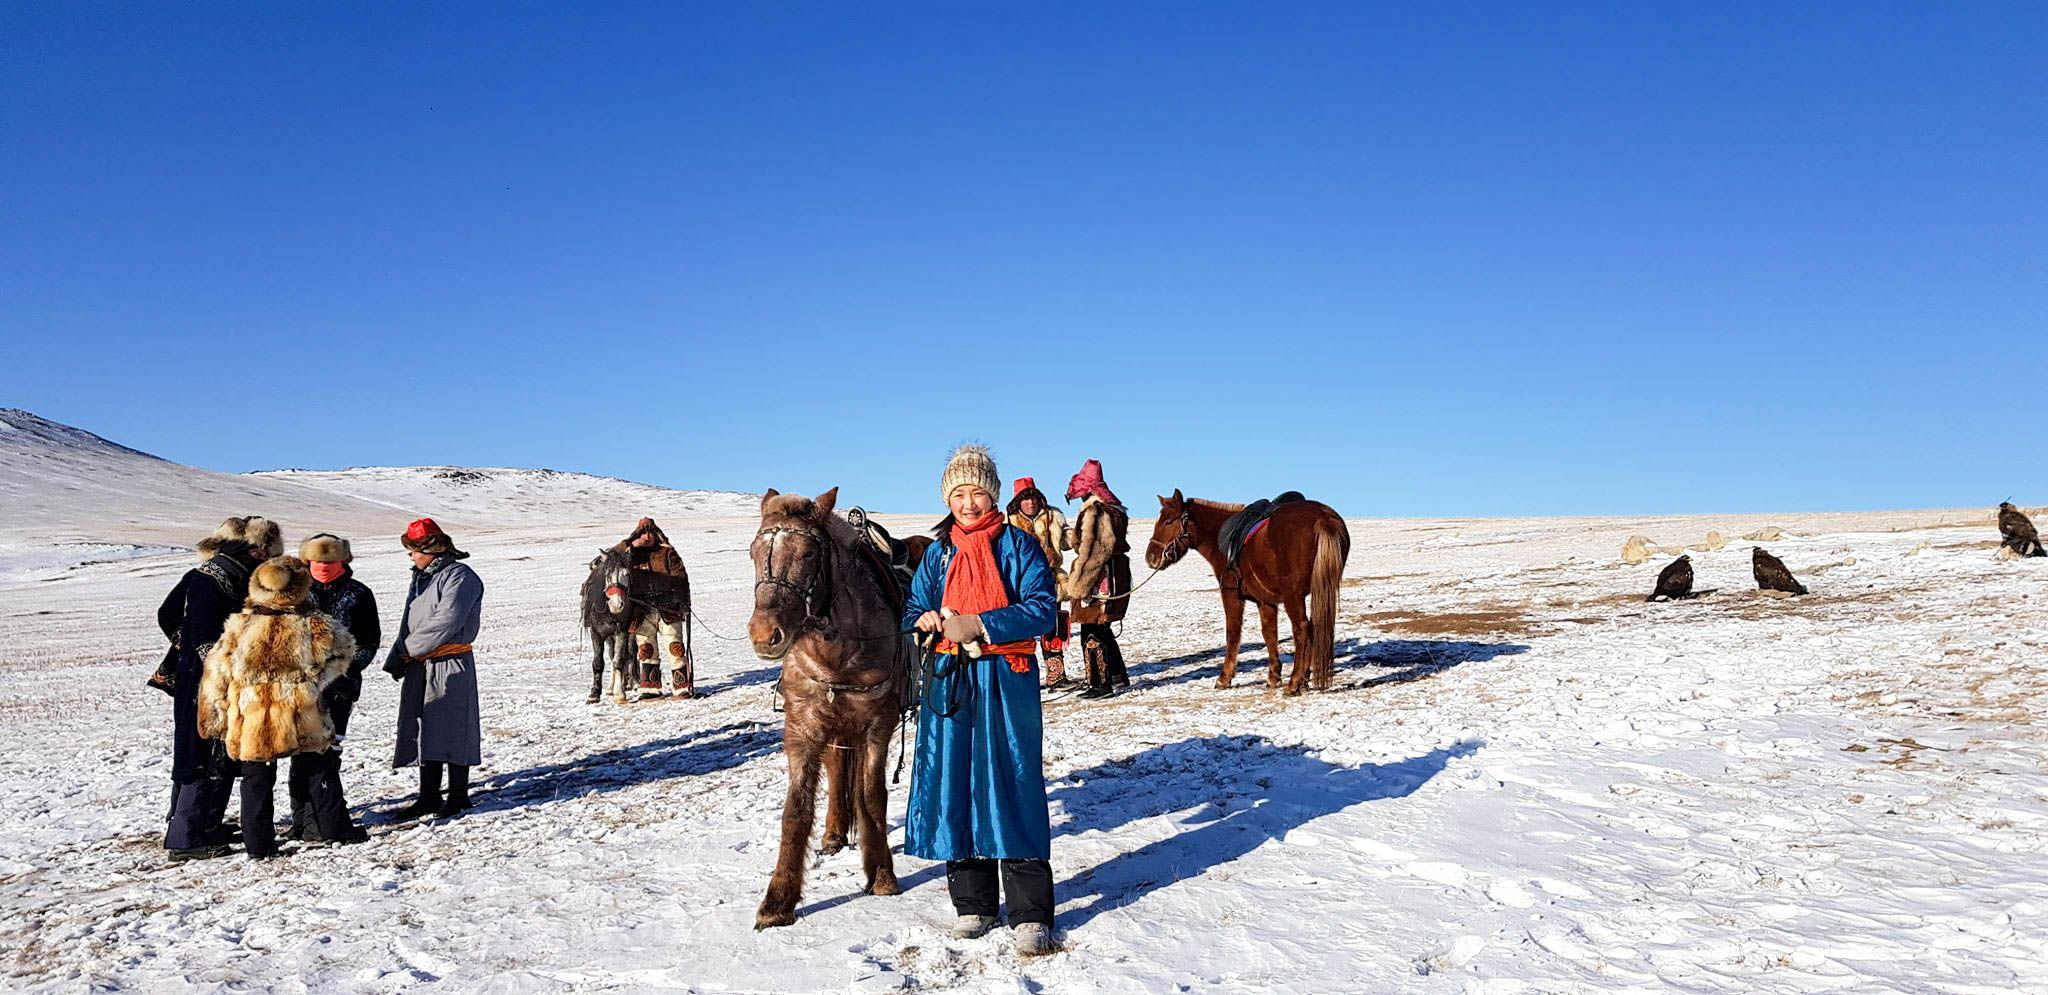 A snowy phjoto of Mongolia with locals and horses preparing to ride.